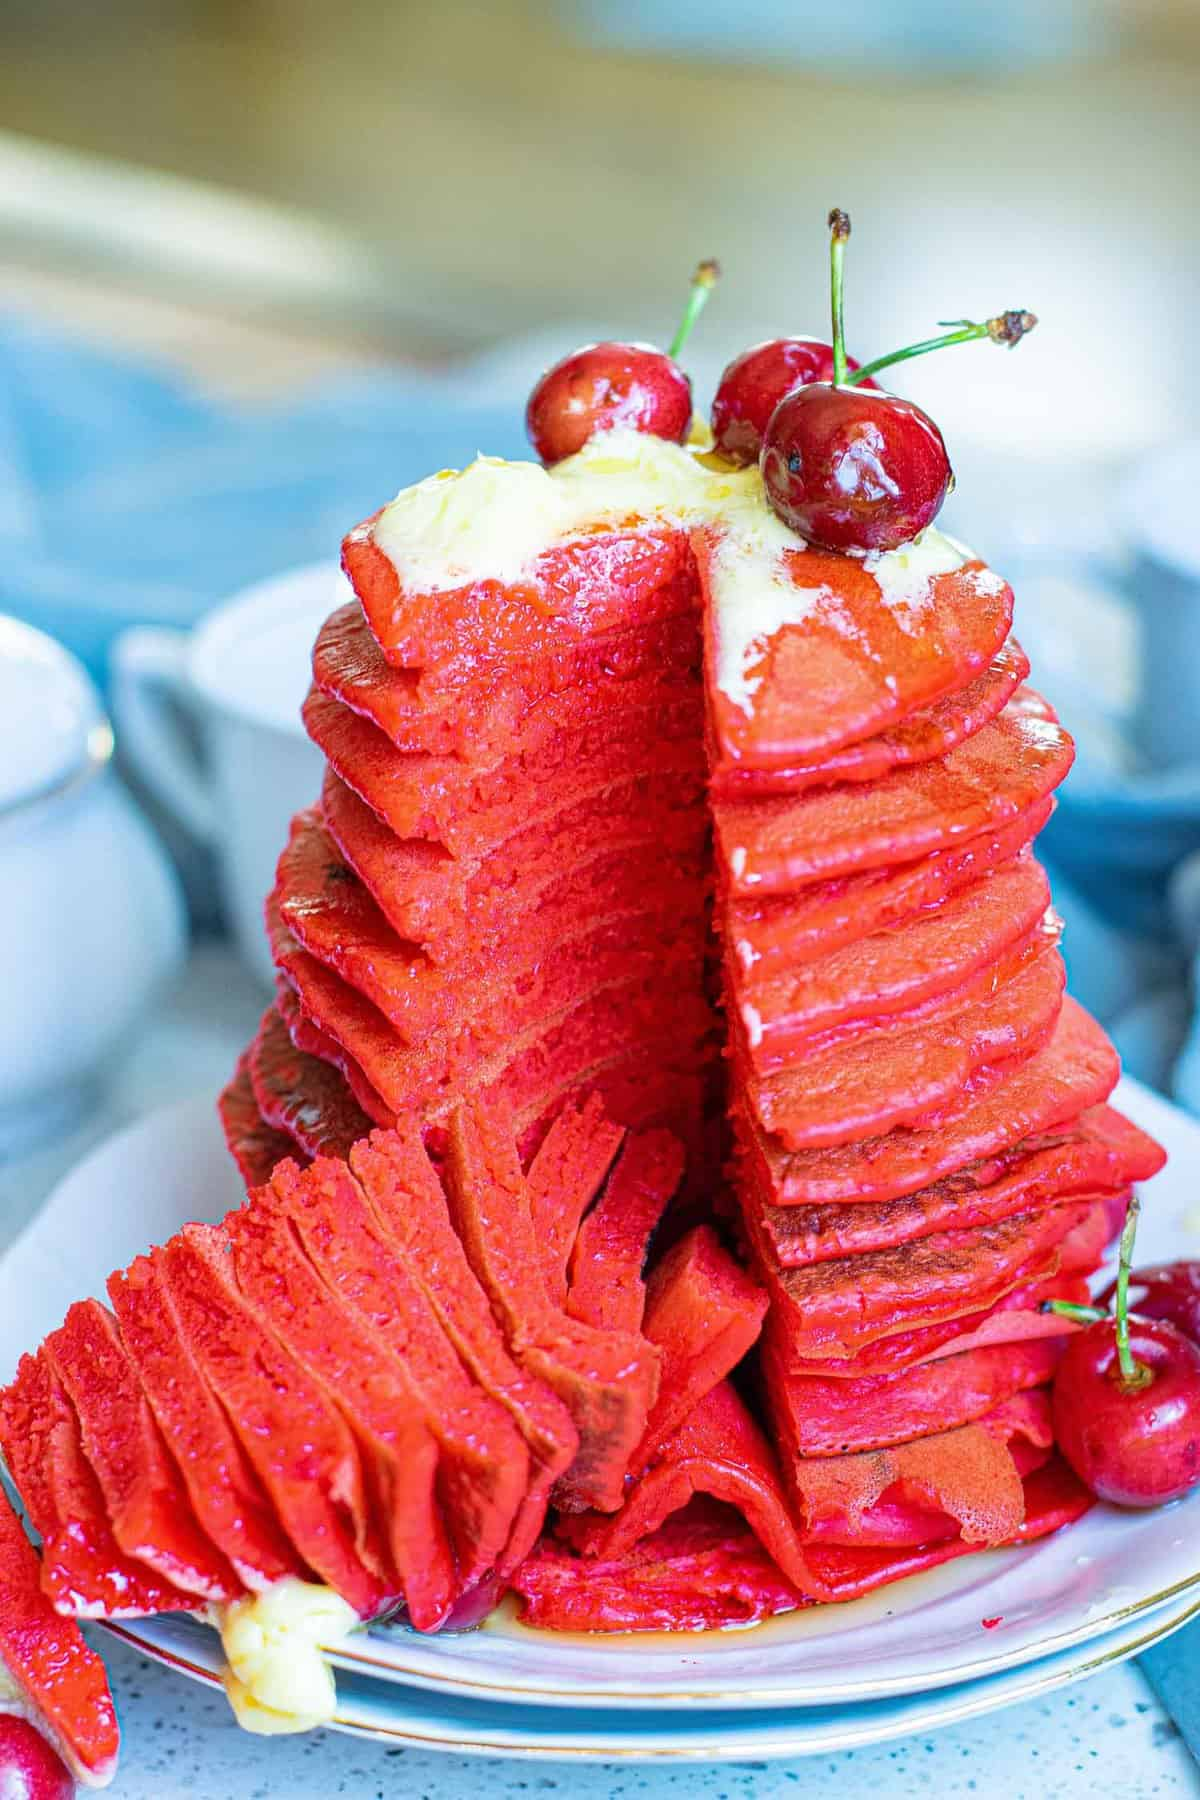 Large stack of red velvet pancakes topped with cherries.